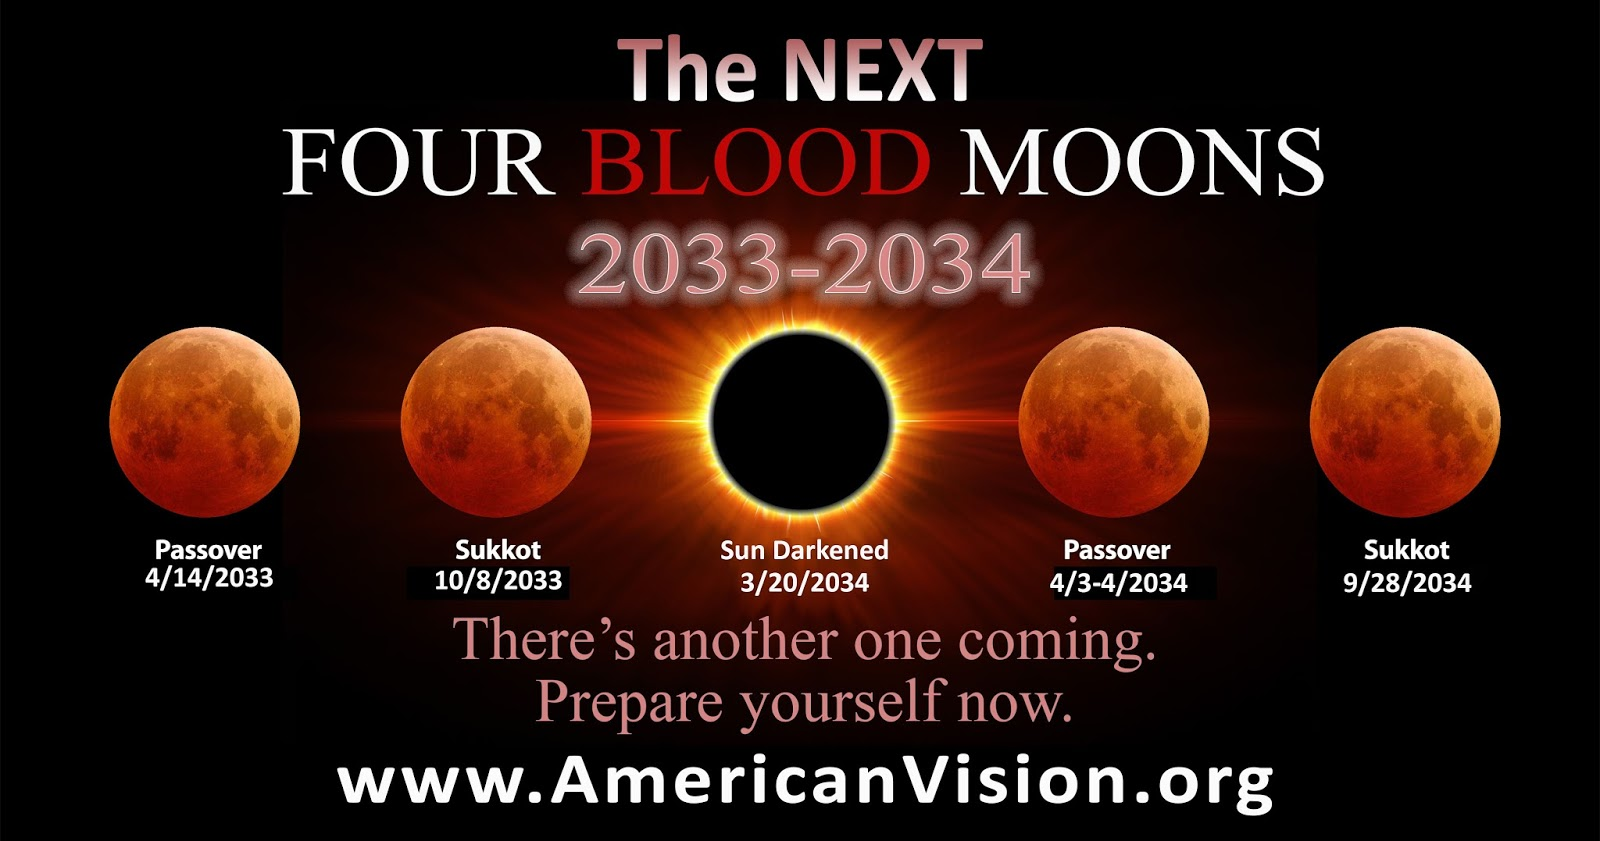 Sep 01, 2021· when to see the full moon in october 2021. Rise Up and Come Out Church: MOVIE: WILD RIDE THROUGH THE END TIMES: WHEN WILL THE WORLD END ...